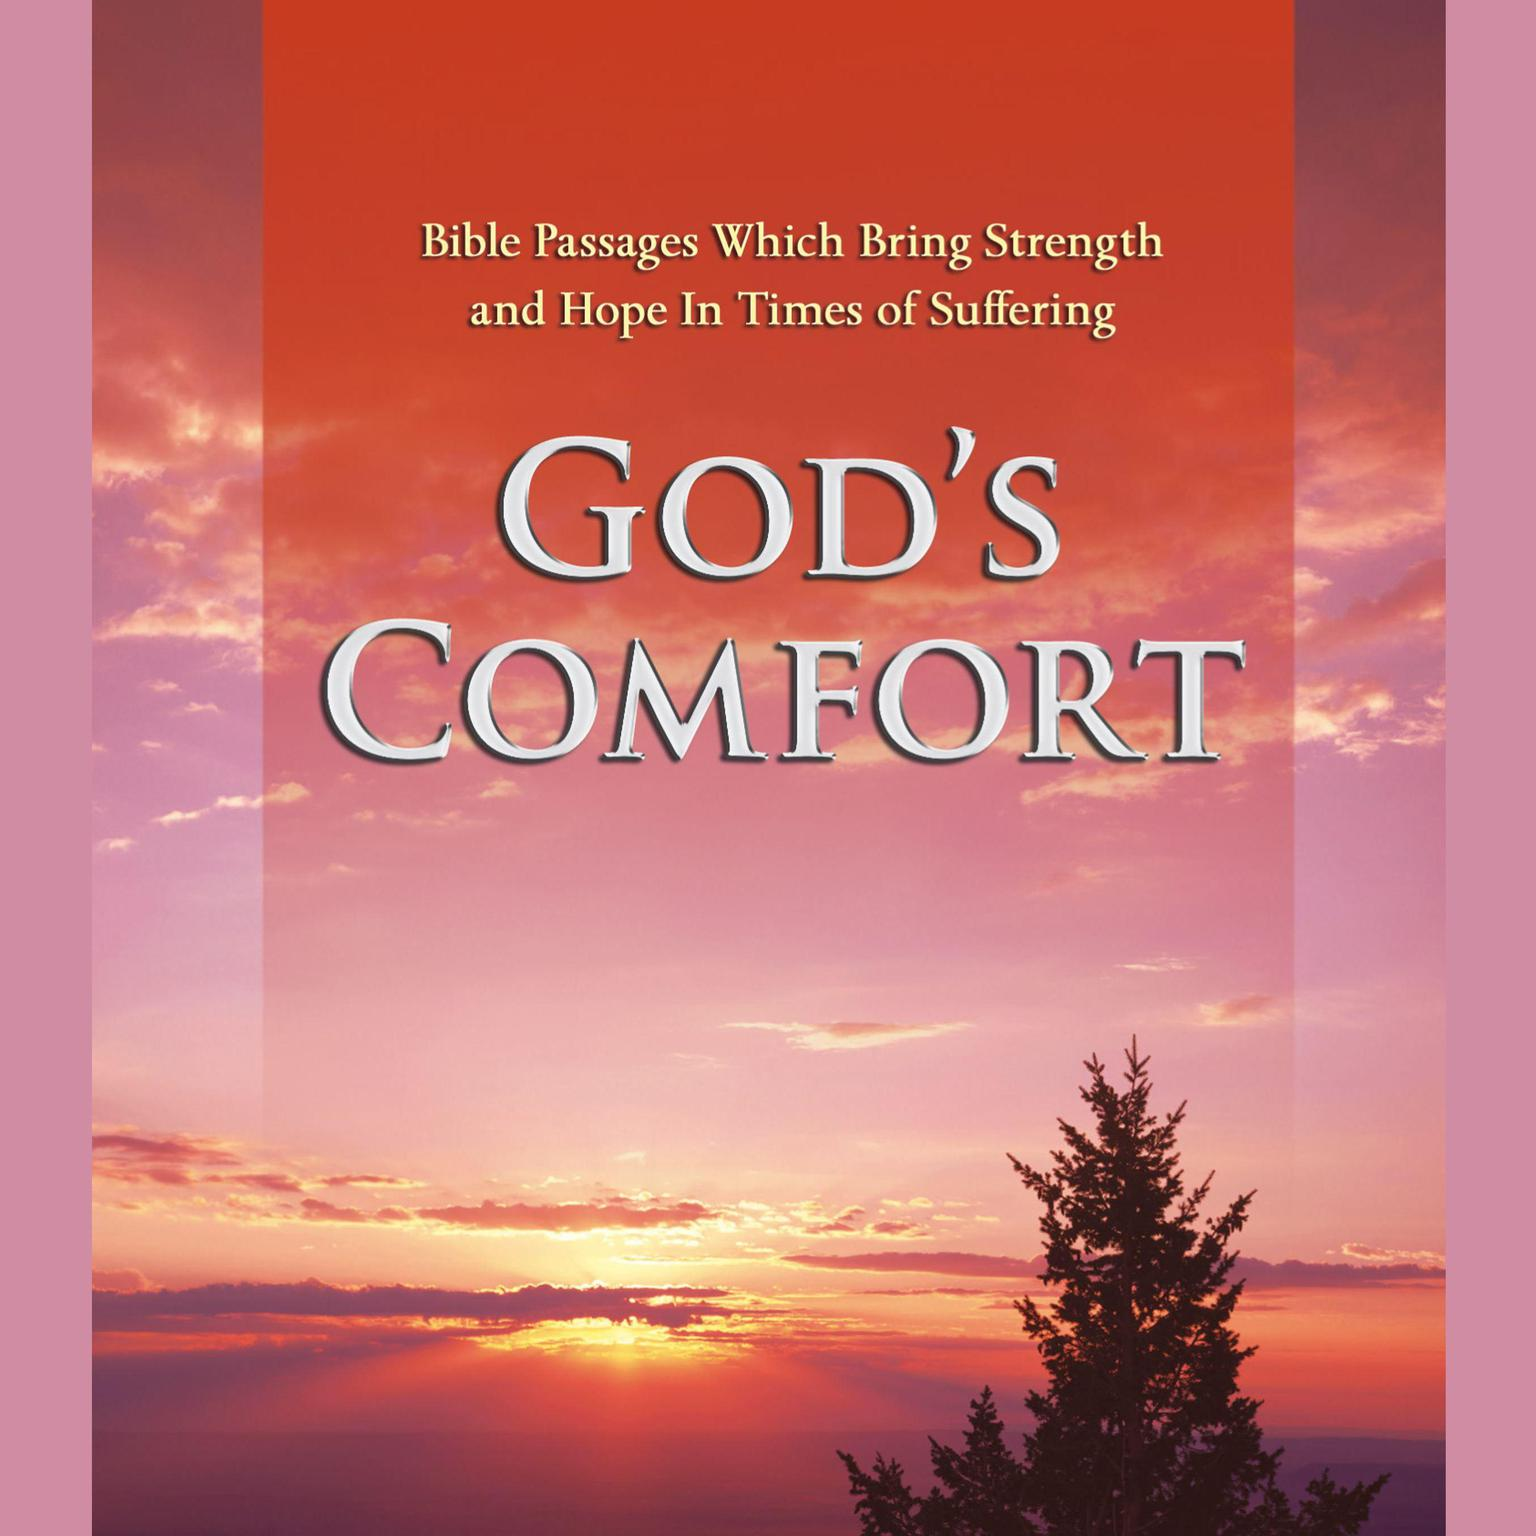 Printable God's Comfort: Bible Passages Which Bring Strength and Hope In Times of Suffering Audiobook Cover Art